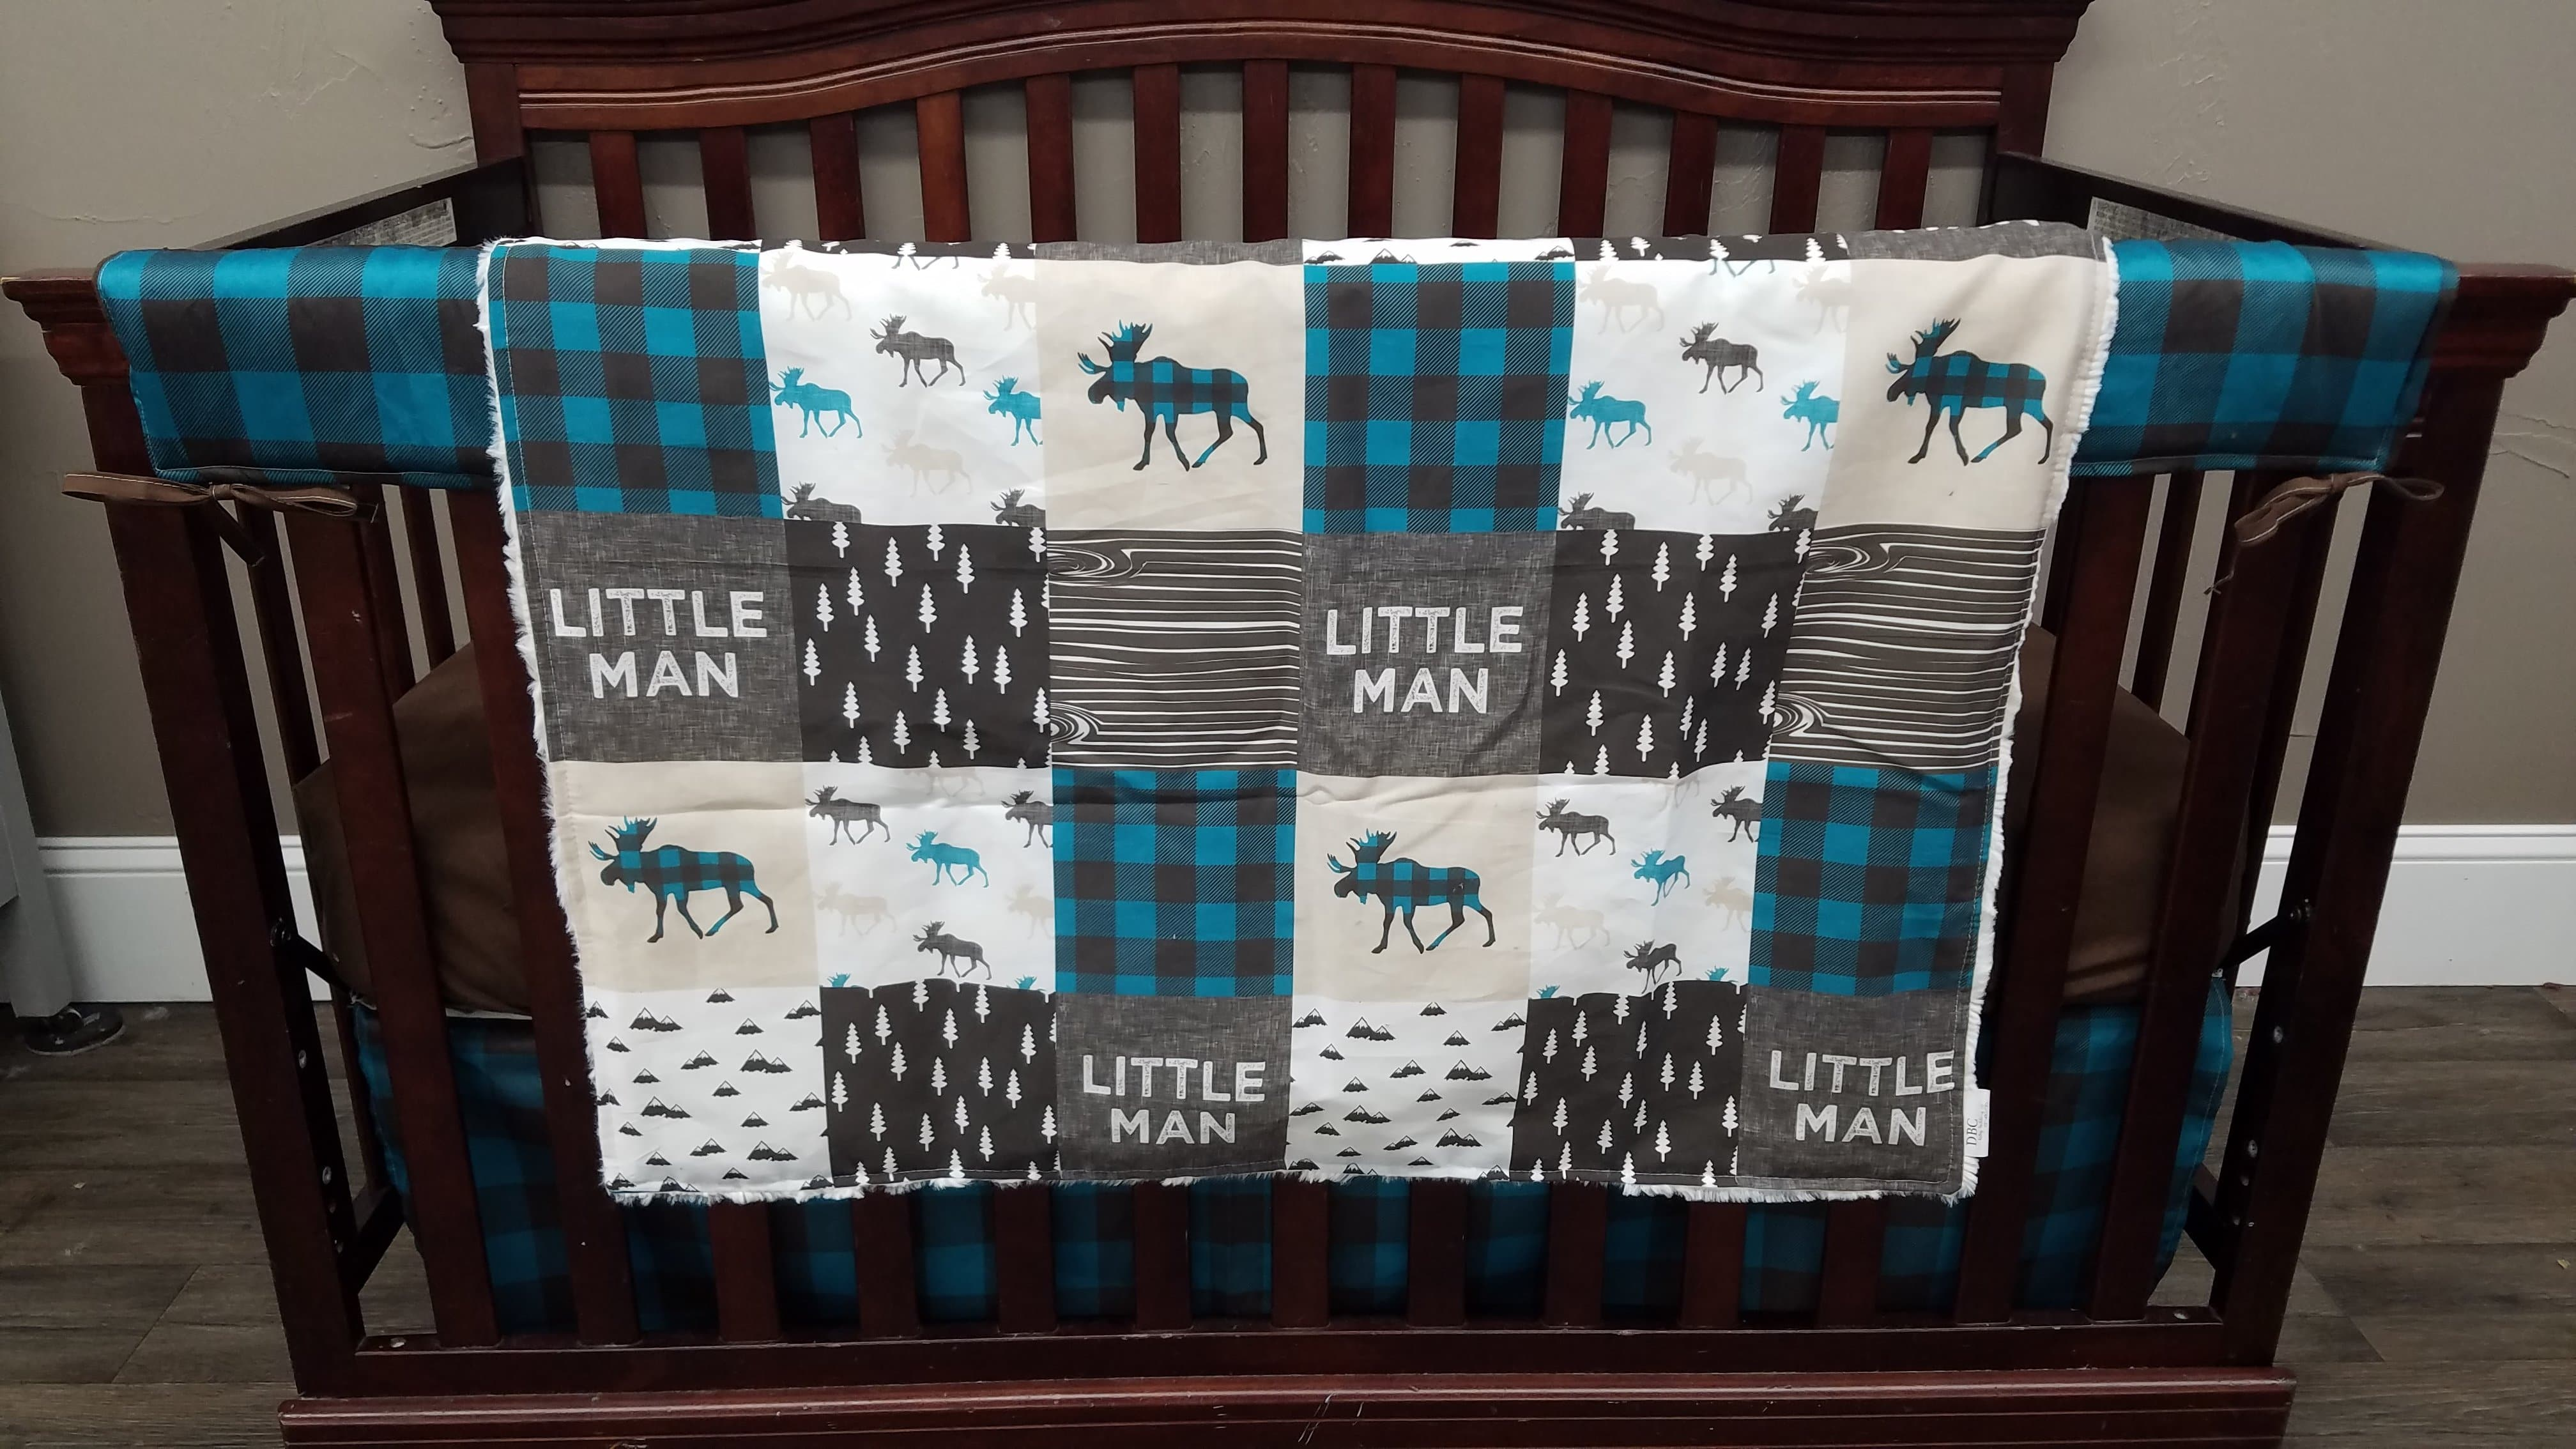 winnie fletching designs baby arrow cribs boys cus bedding grey set bumper western pooh white plaid blue navy minky caden accent trim crib nursery and pink cot pillow lane with boy deer brett mint gingham fullxfull the lavender checkered